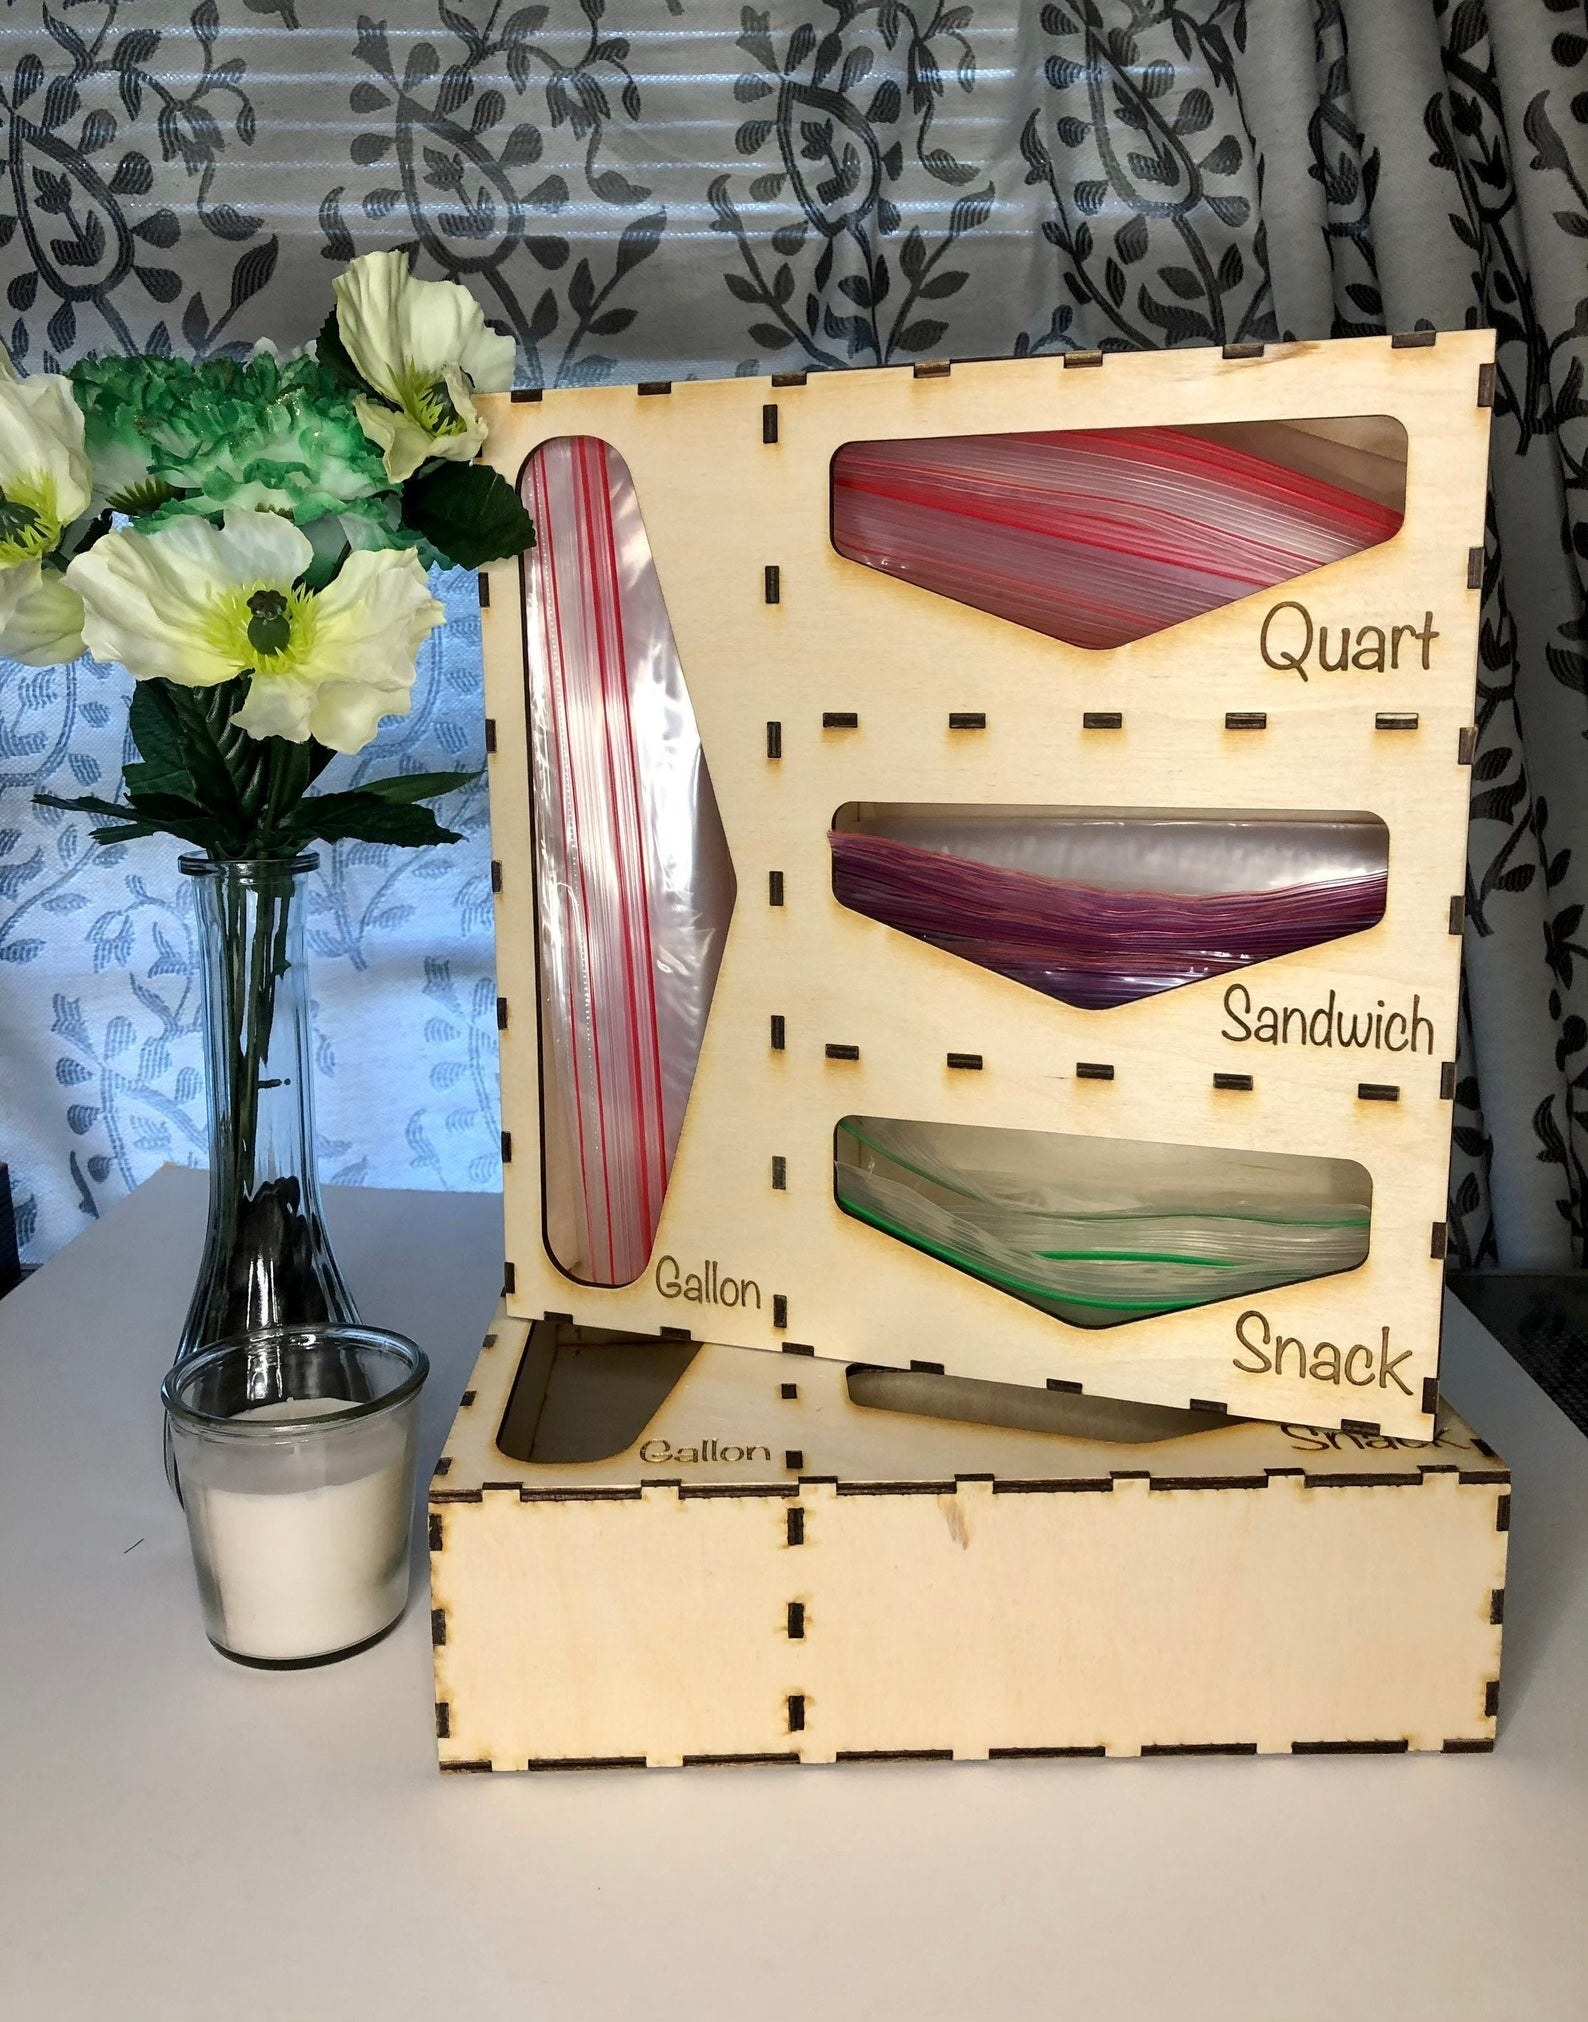 A wooden organizer with space for gallon, snack, sandwich, and quart-sized bags